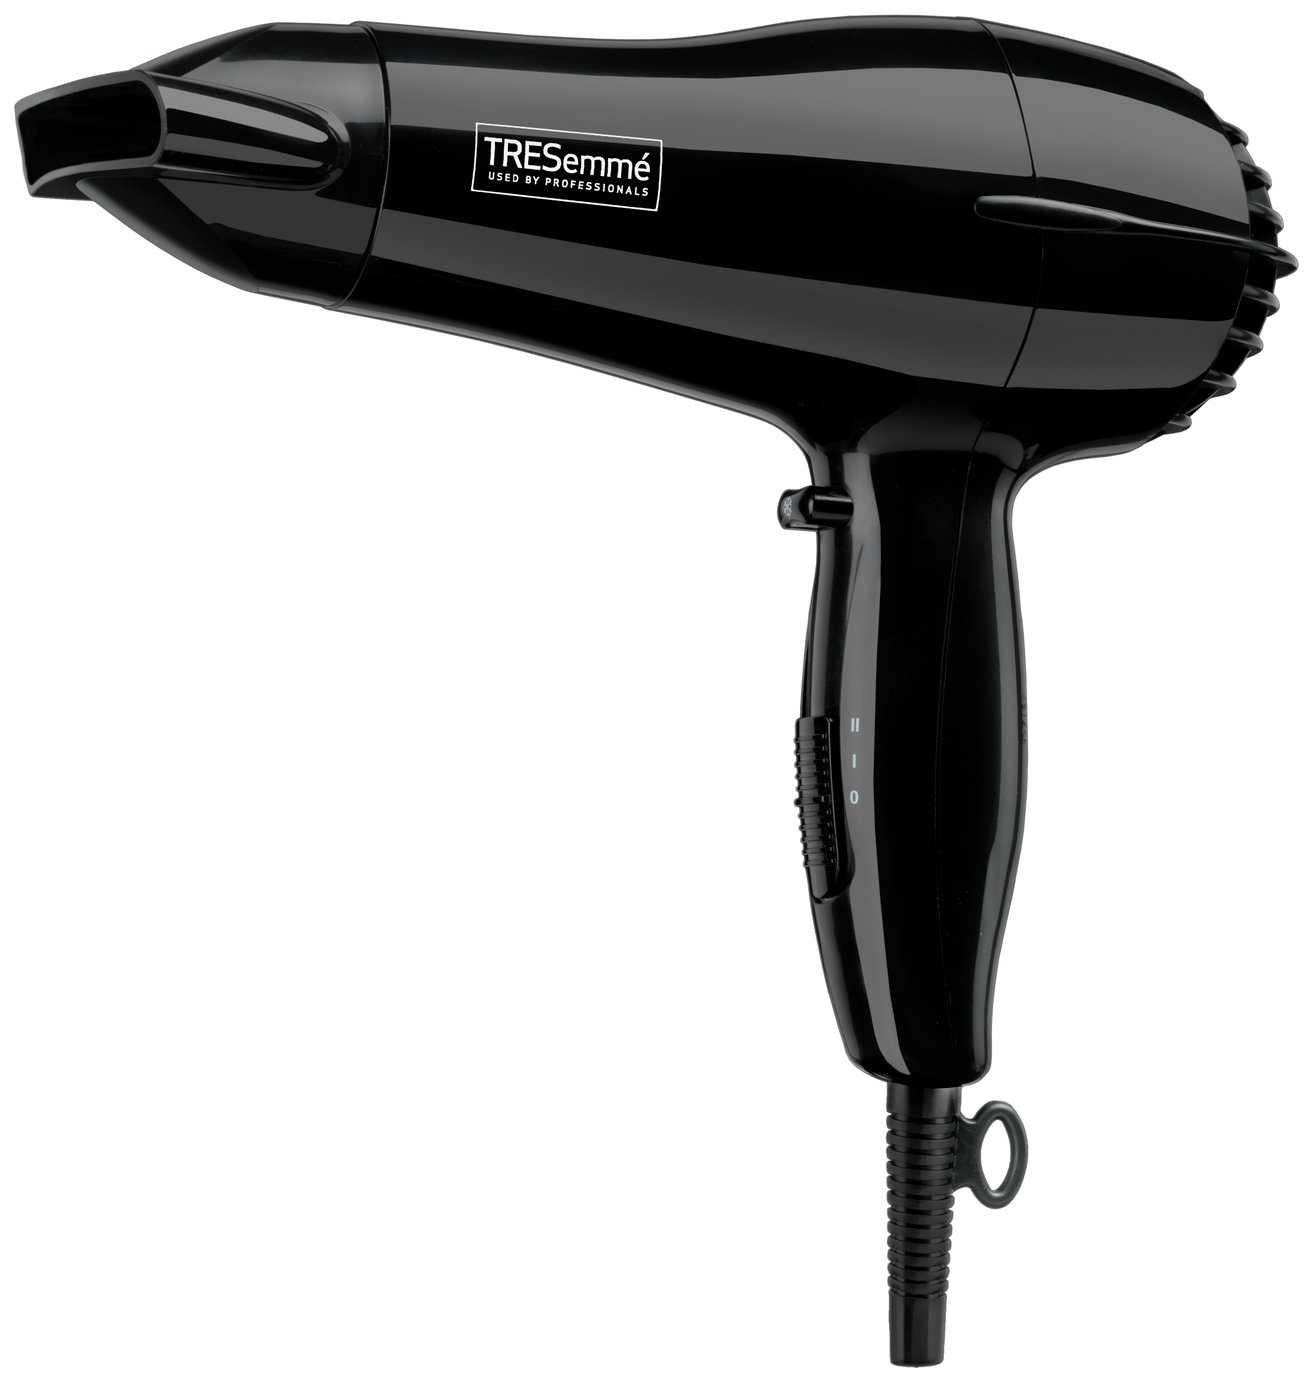 TRESemme Compact Lightweight Hair Dryer